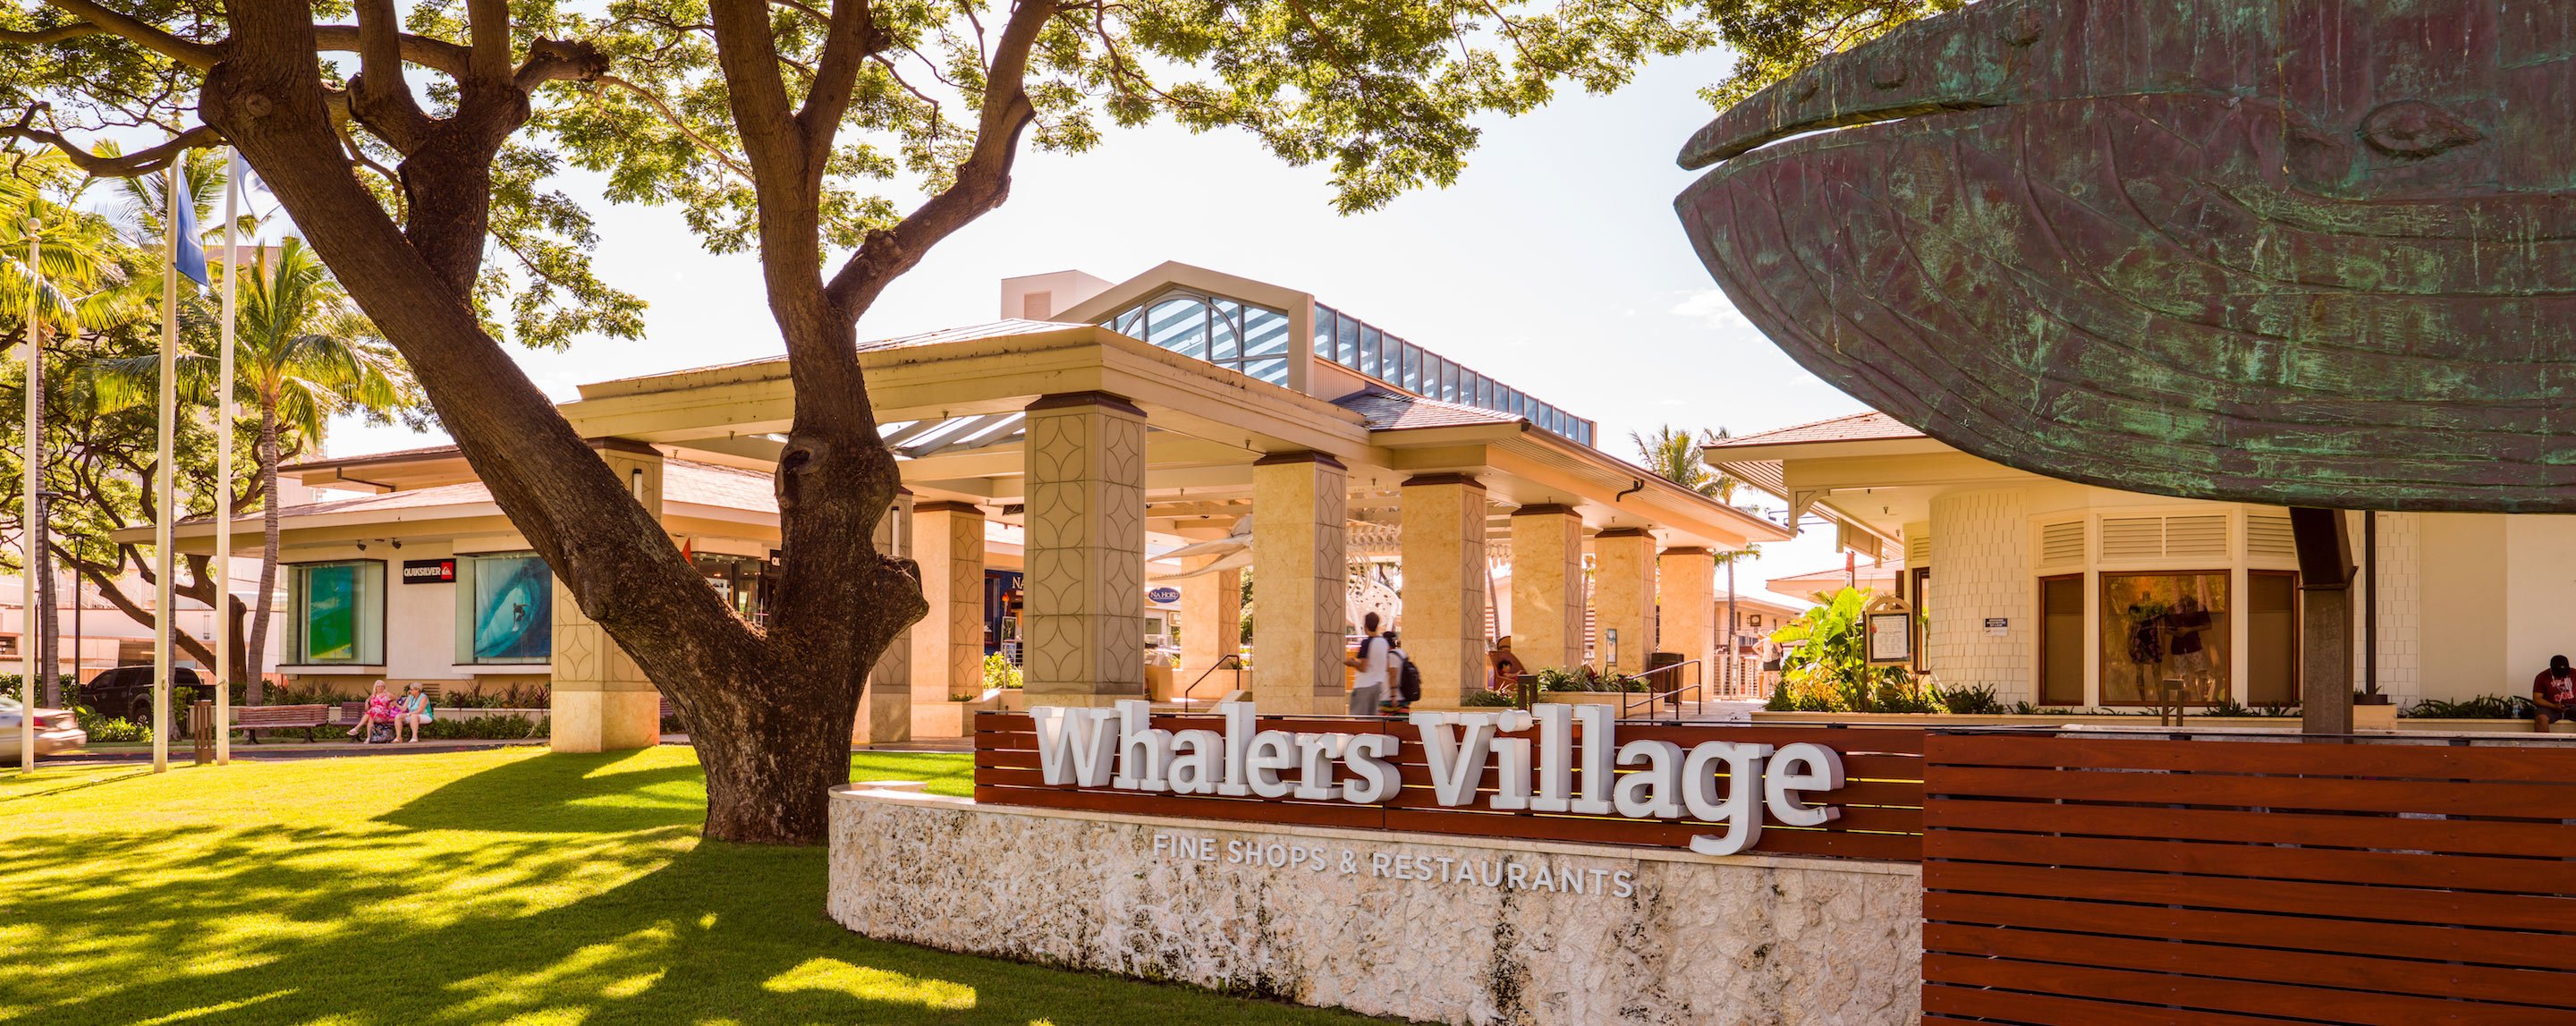 Whalers Village Main Entrance Sign